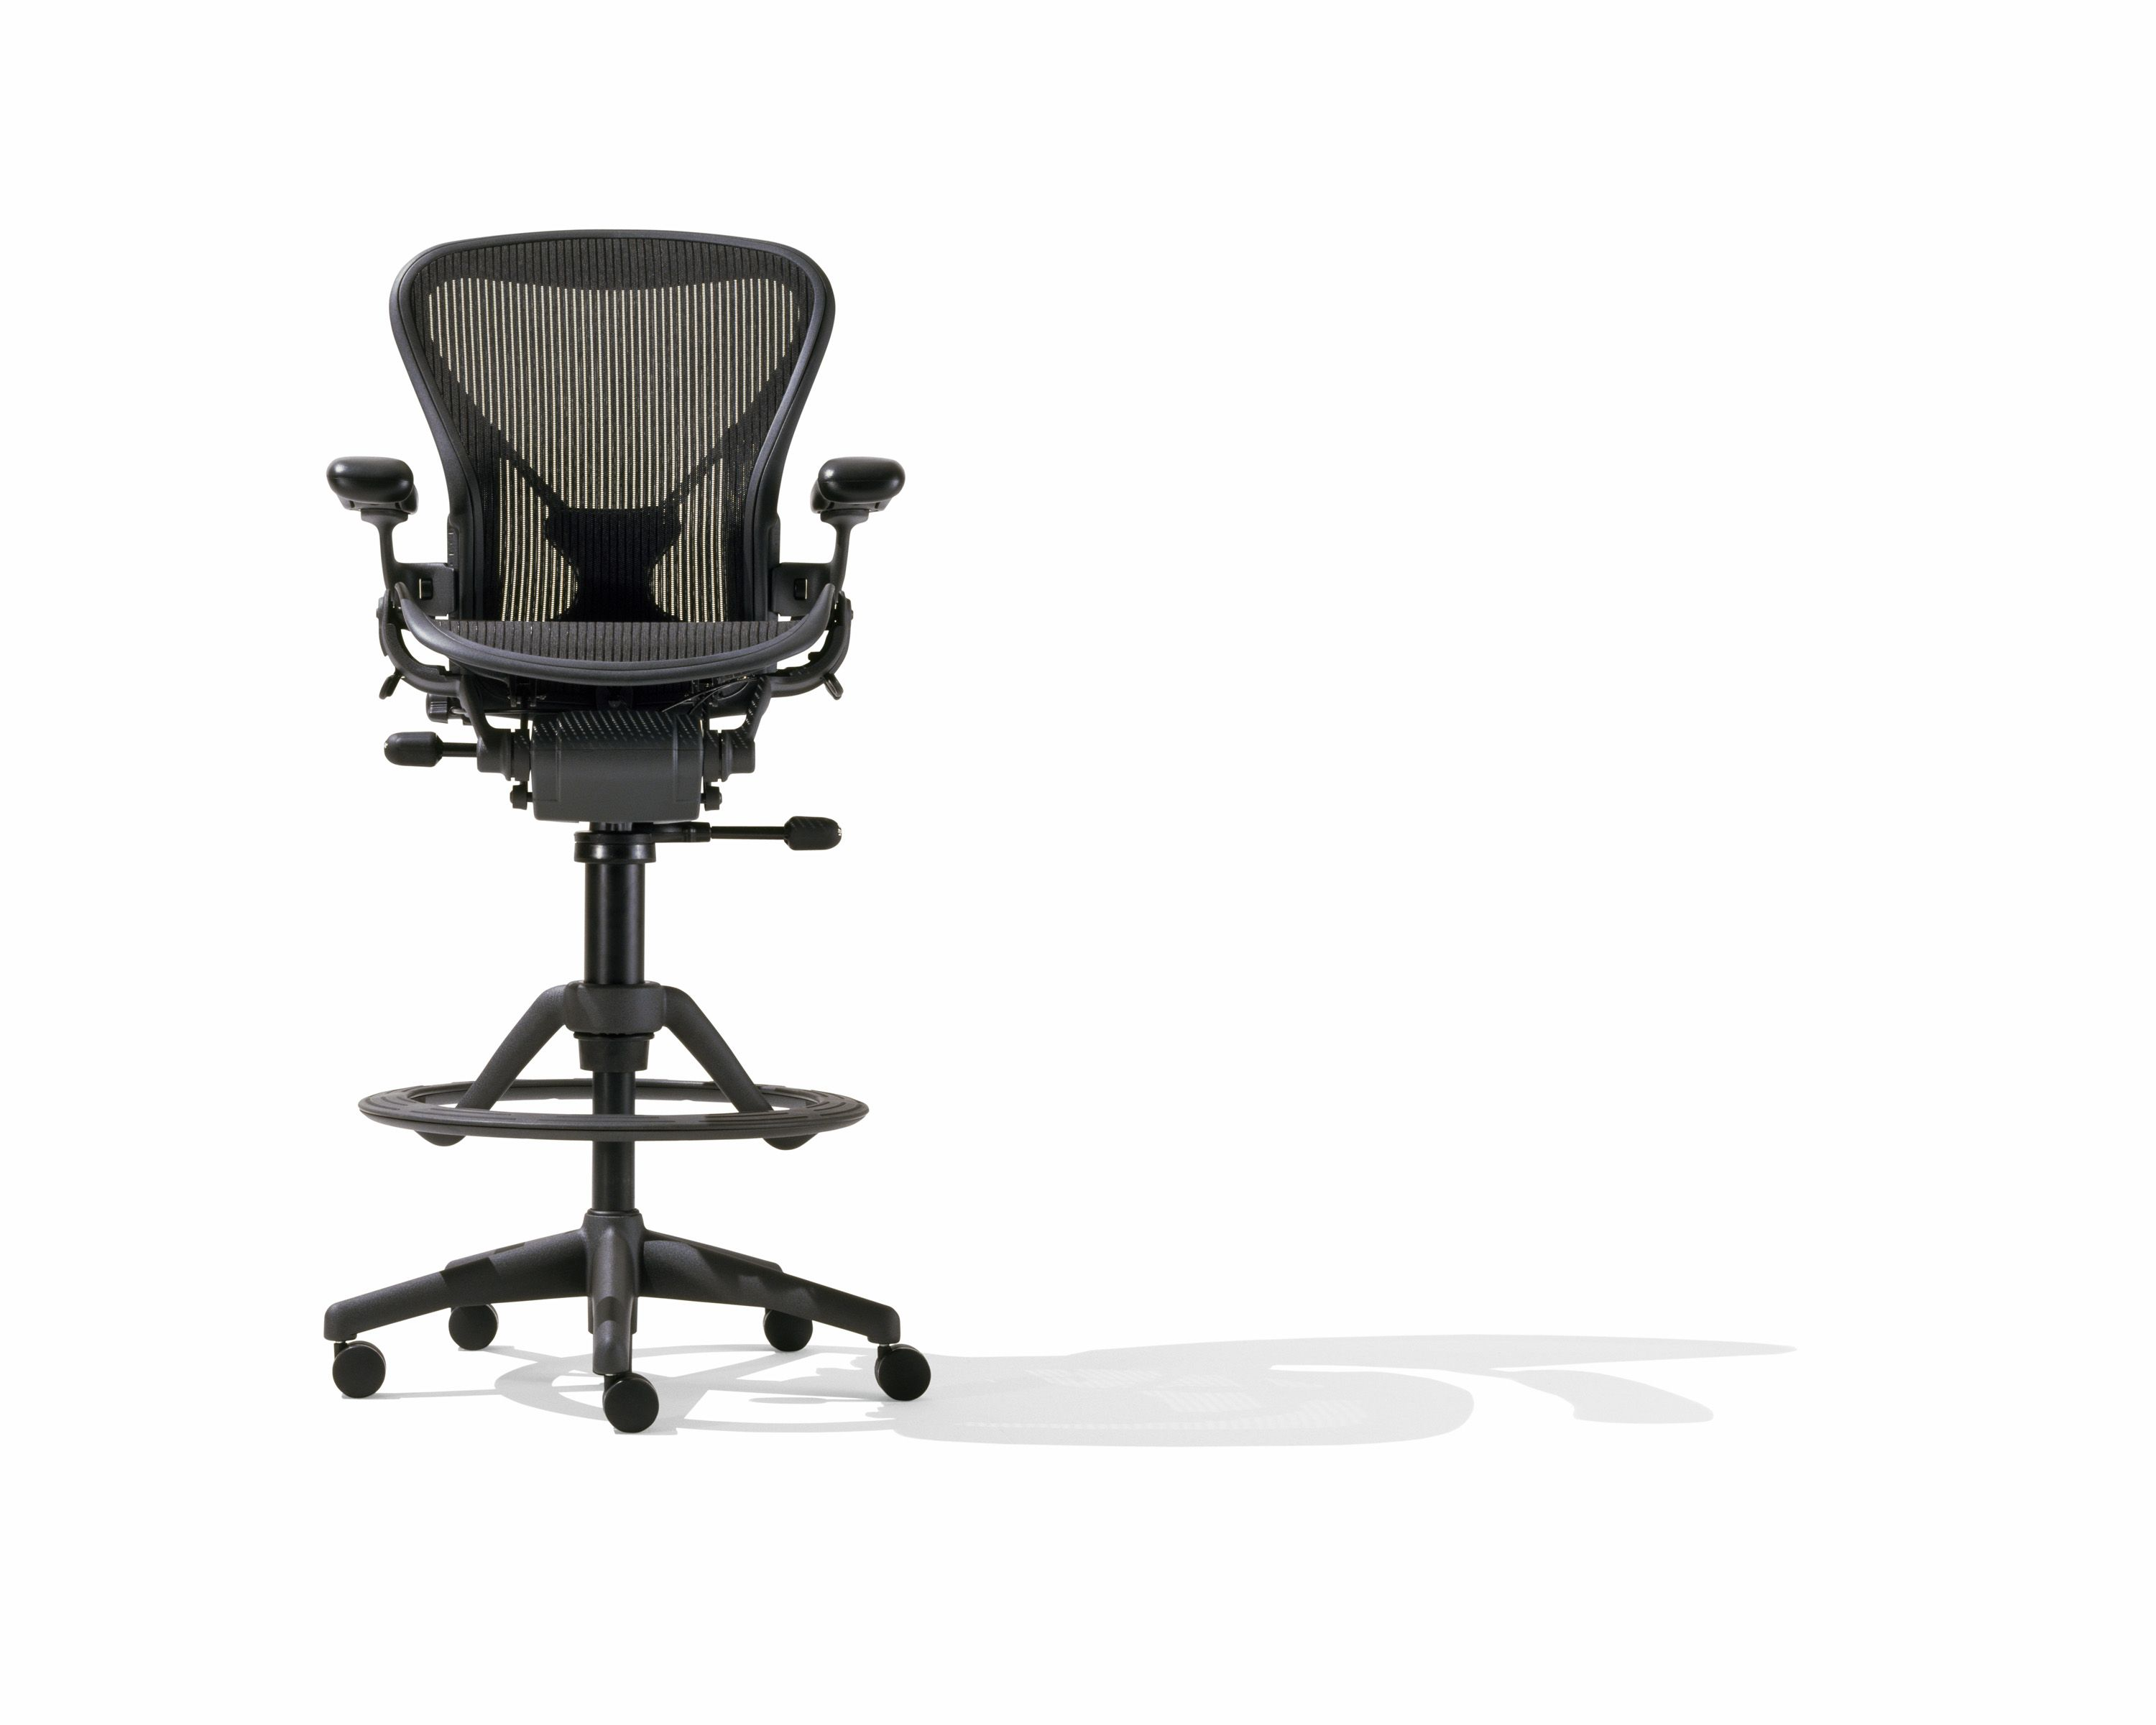 Aeron stool for when I want to sit for a minute instead of